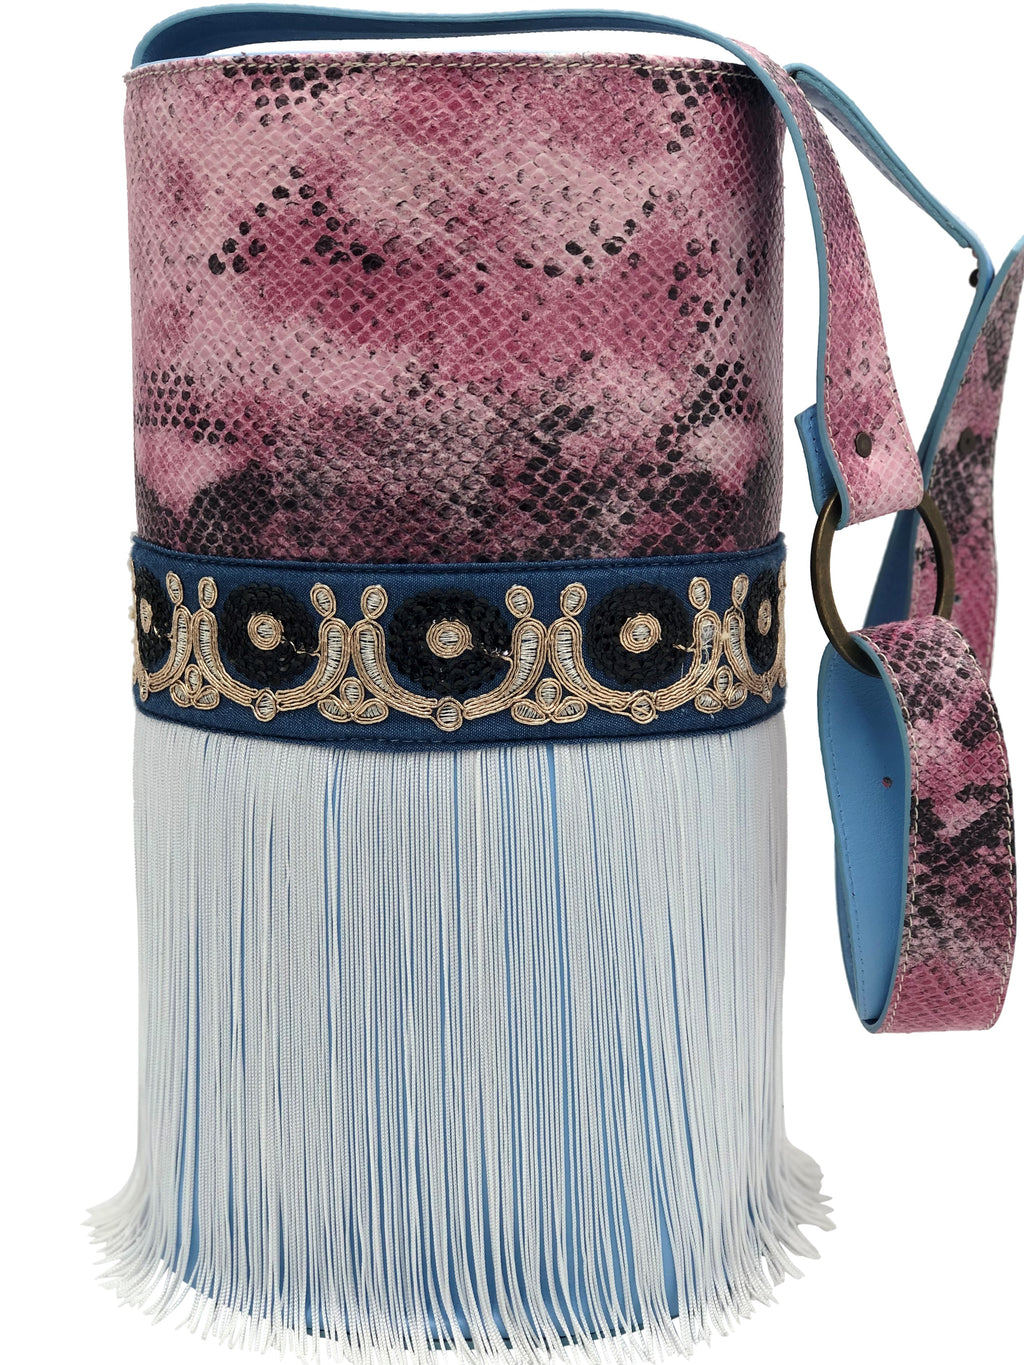 Pink & black snake-like engraved and blue leather bag with fringes.